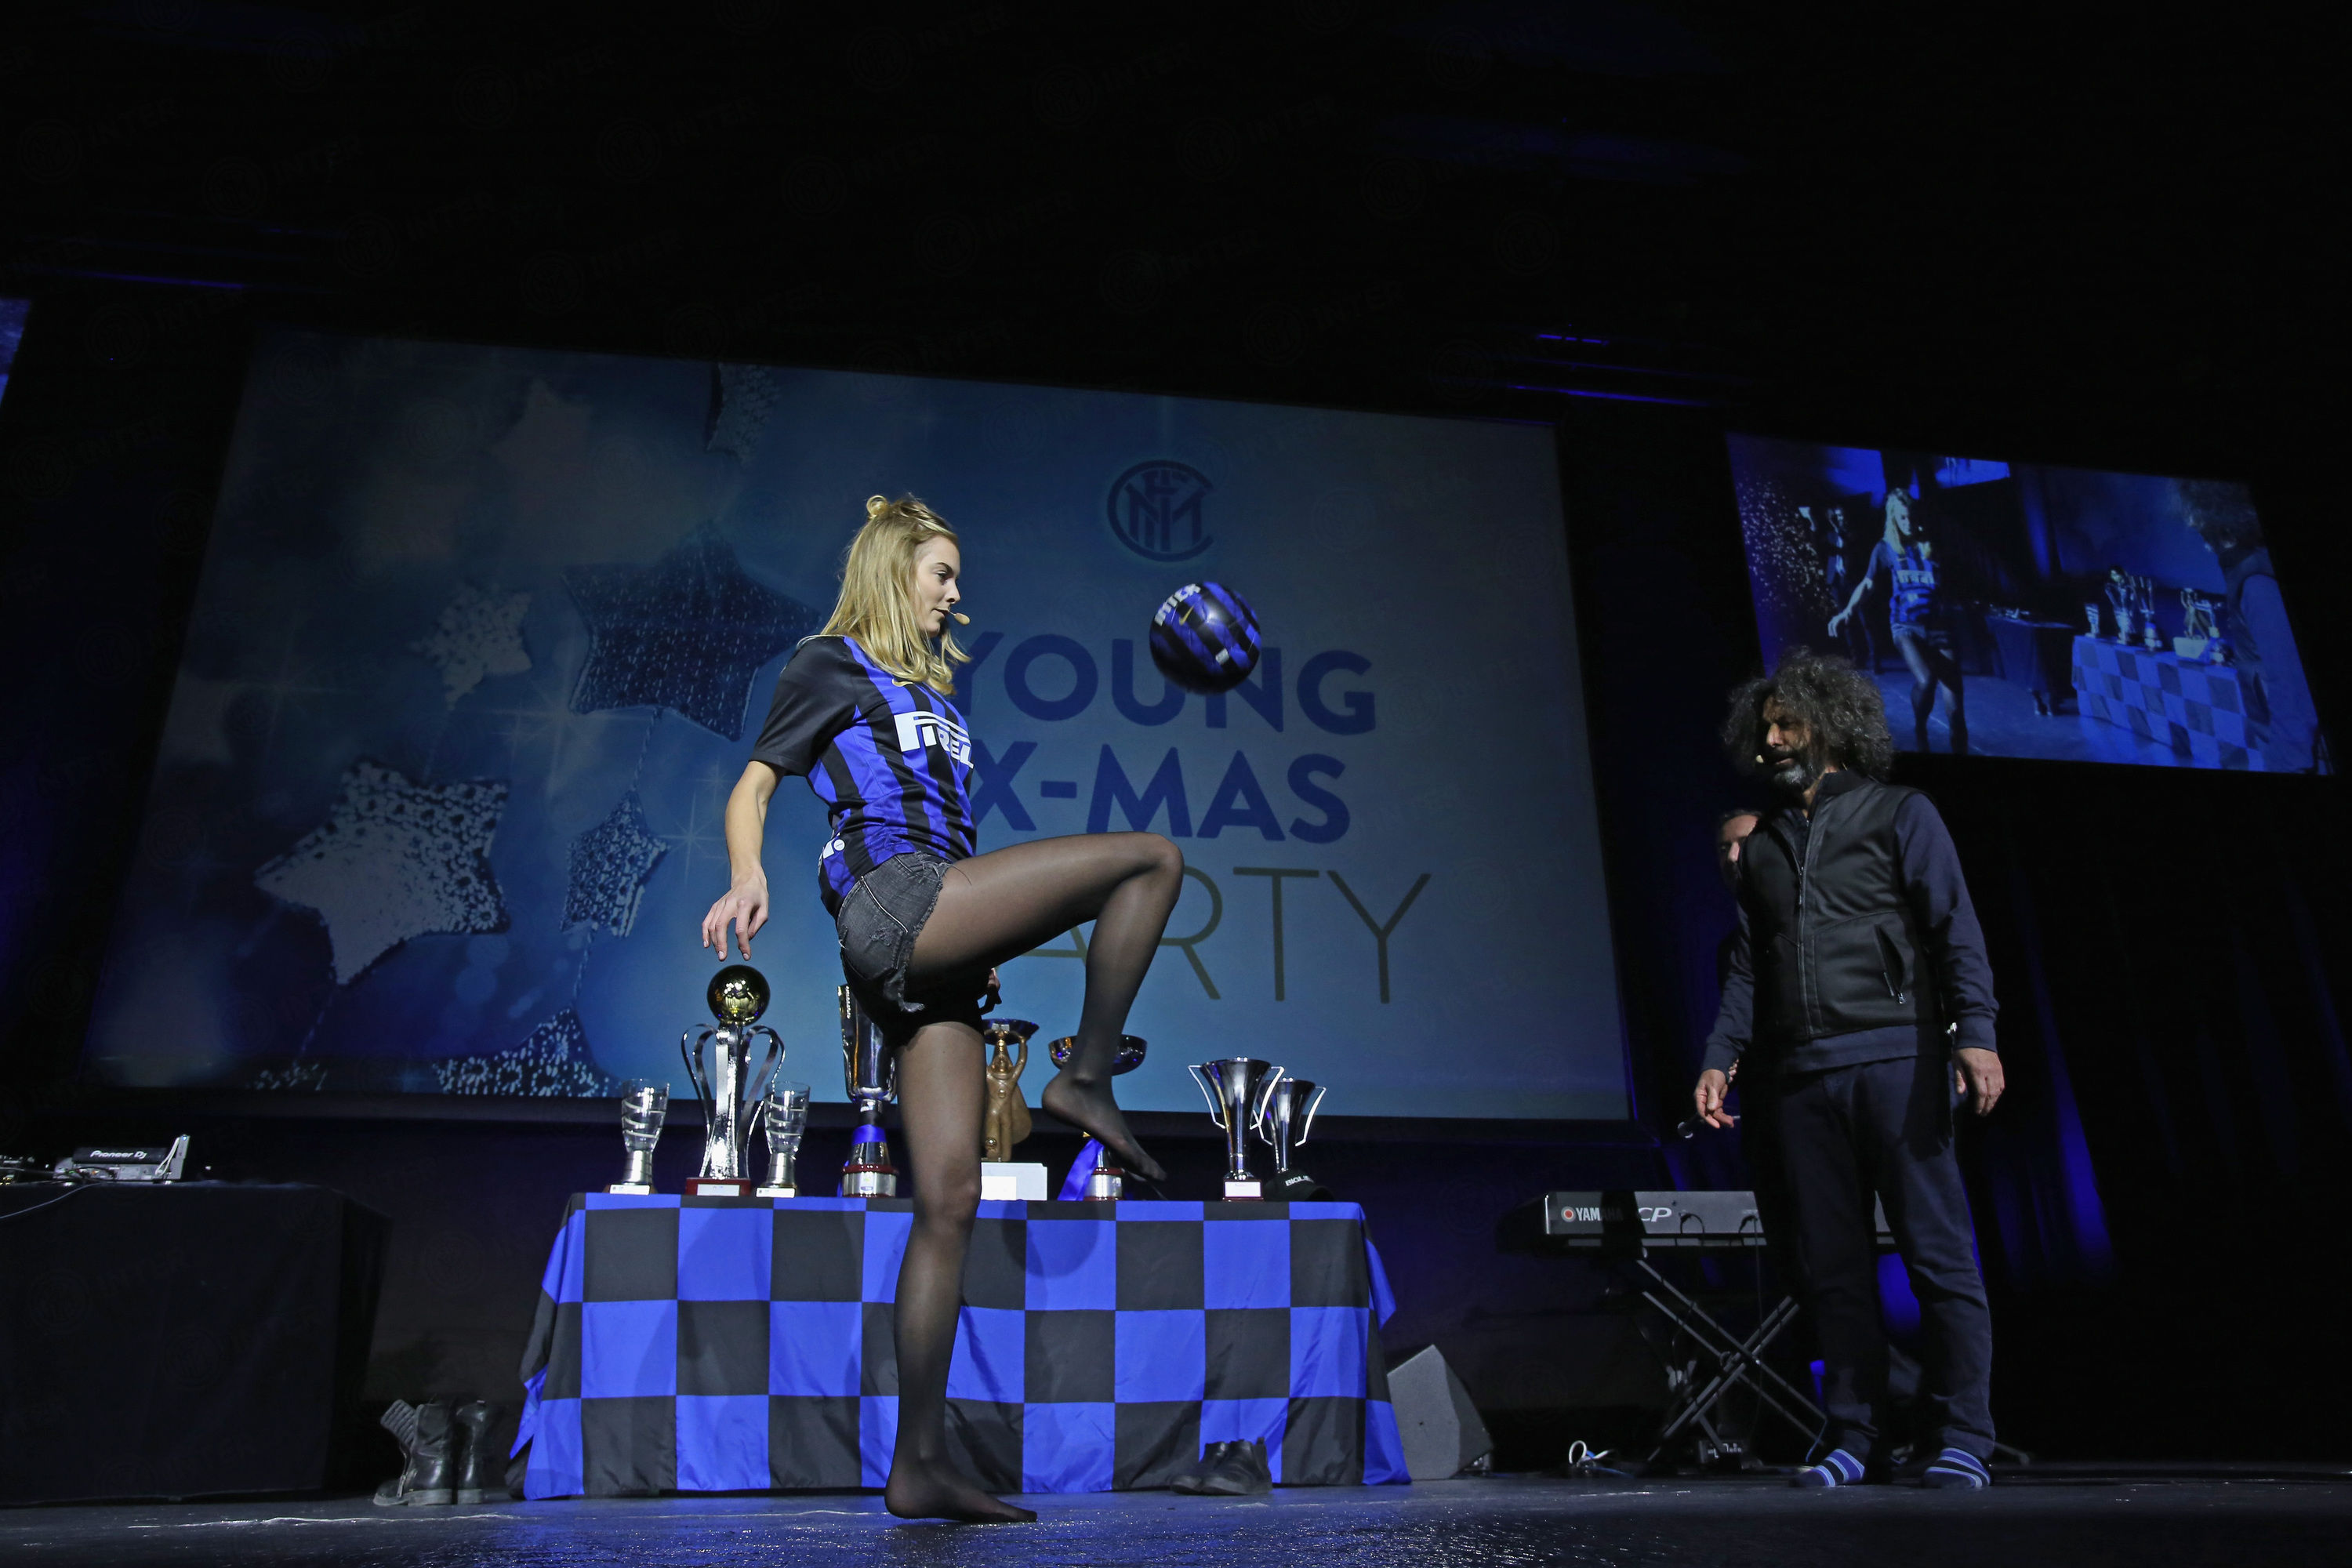 Young Xmas Party: Christmas festivities for the Nerazzurri's Elite Academy